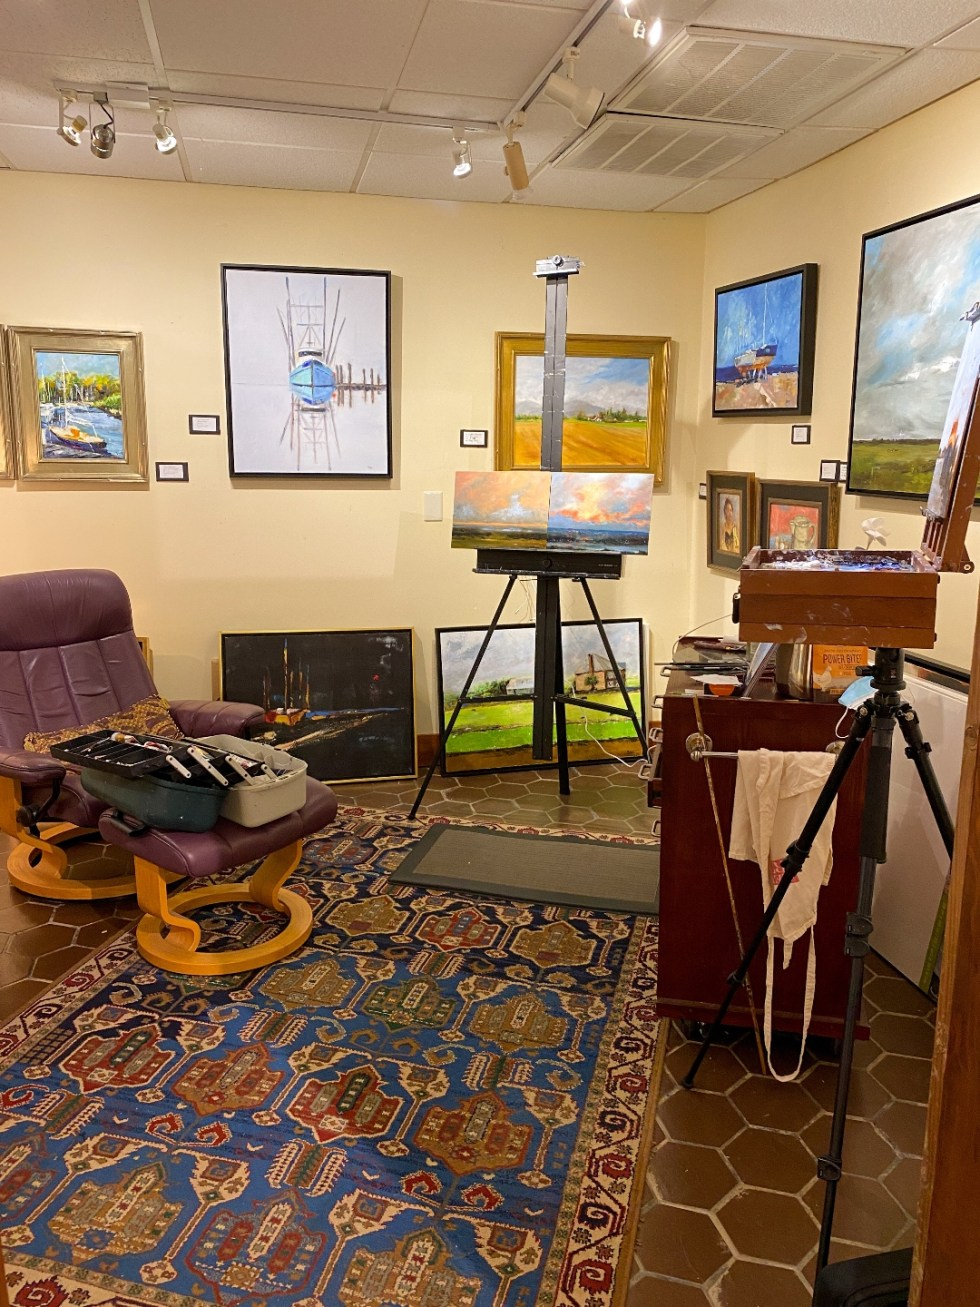 What to Do in Oriental, NC - I'm Fixin' To - @imfixintoblog | Things to do in Oriental NC by popular NC travel blog, I'm Fixin' To: image of an art gallery.